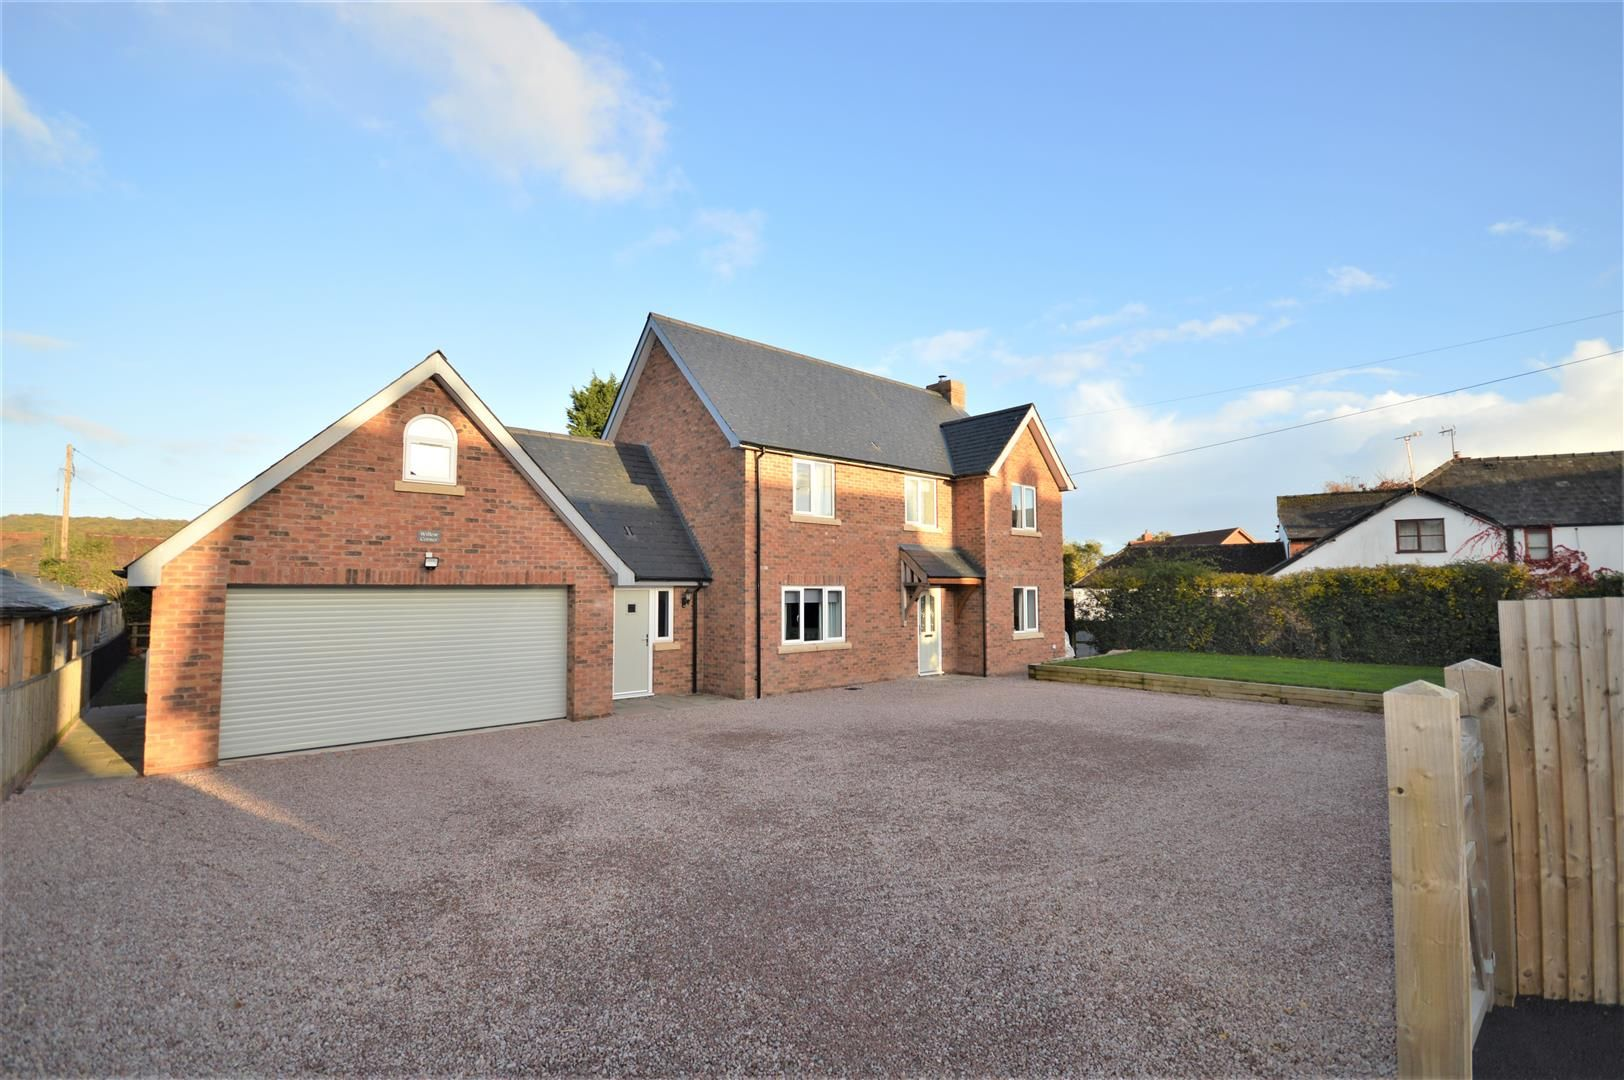 4 bed detached for sale in Canon Pyon, HR4